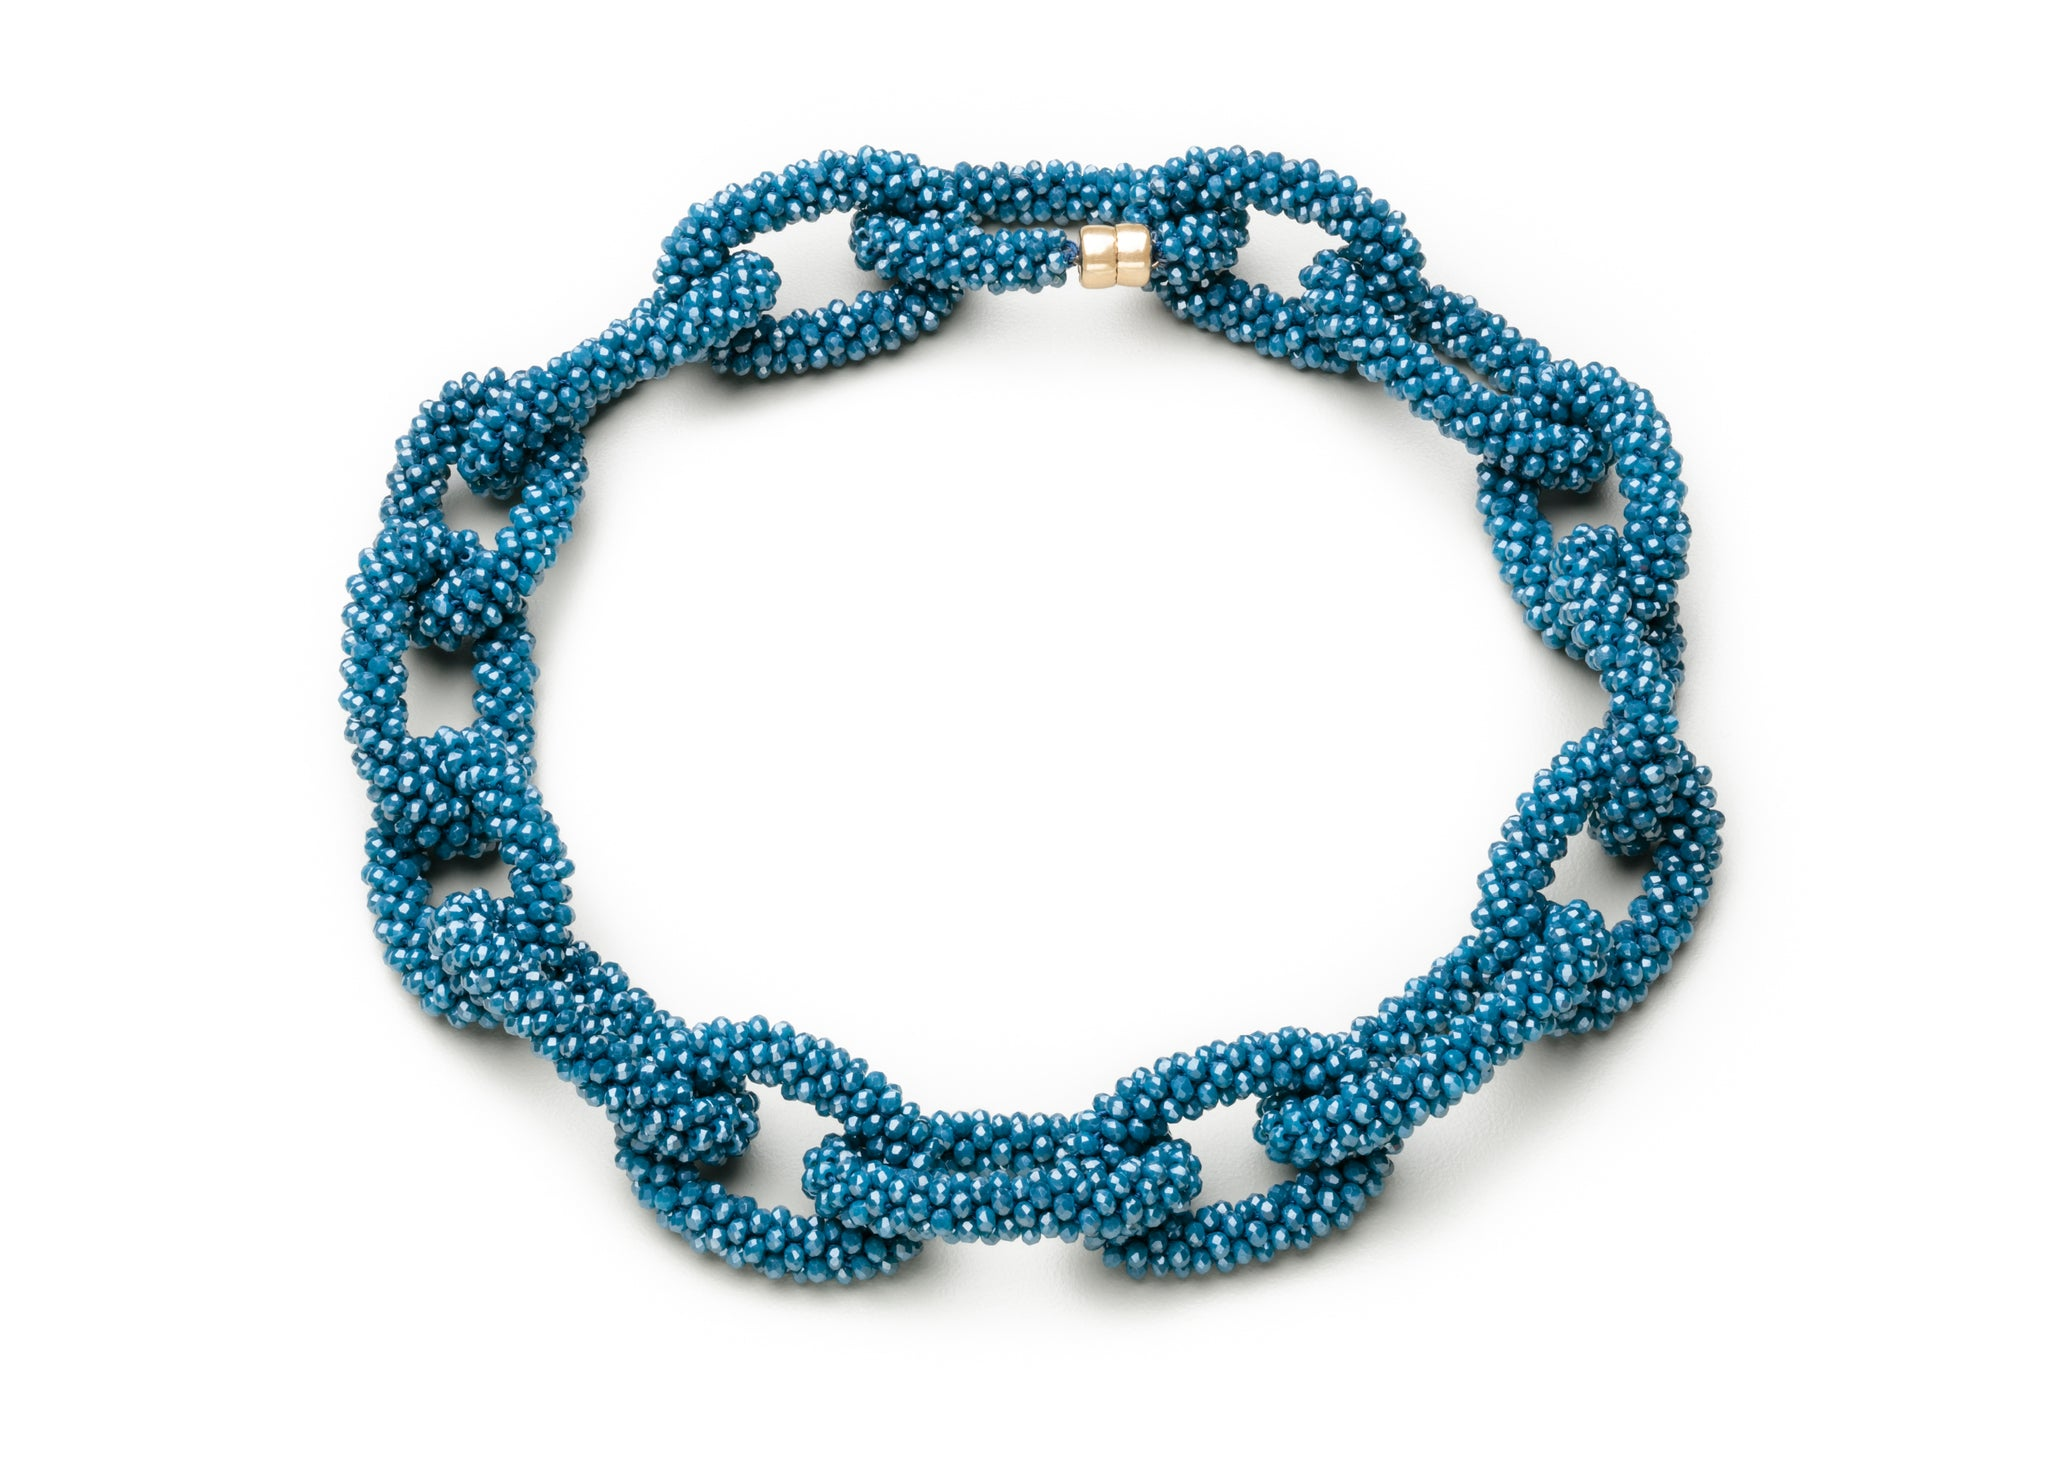 A Caribbean Blue Crystal Linkable Necklace